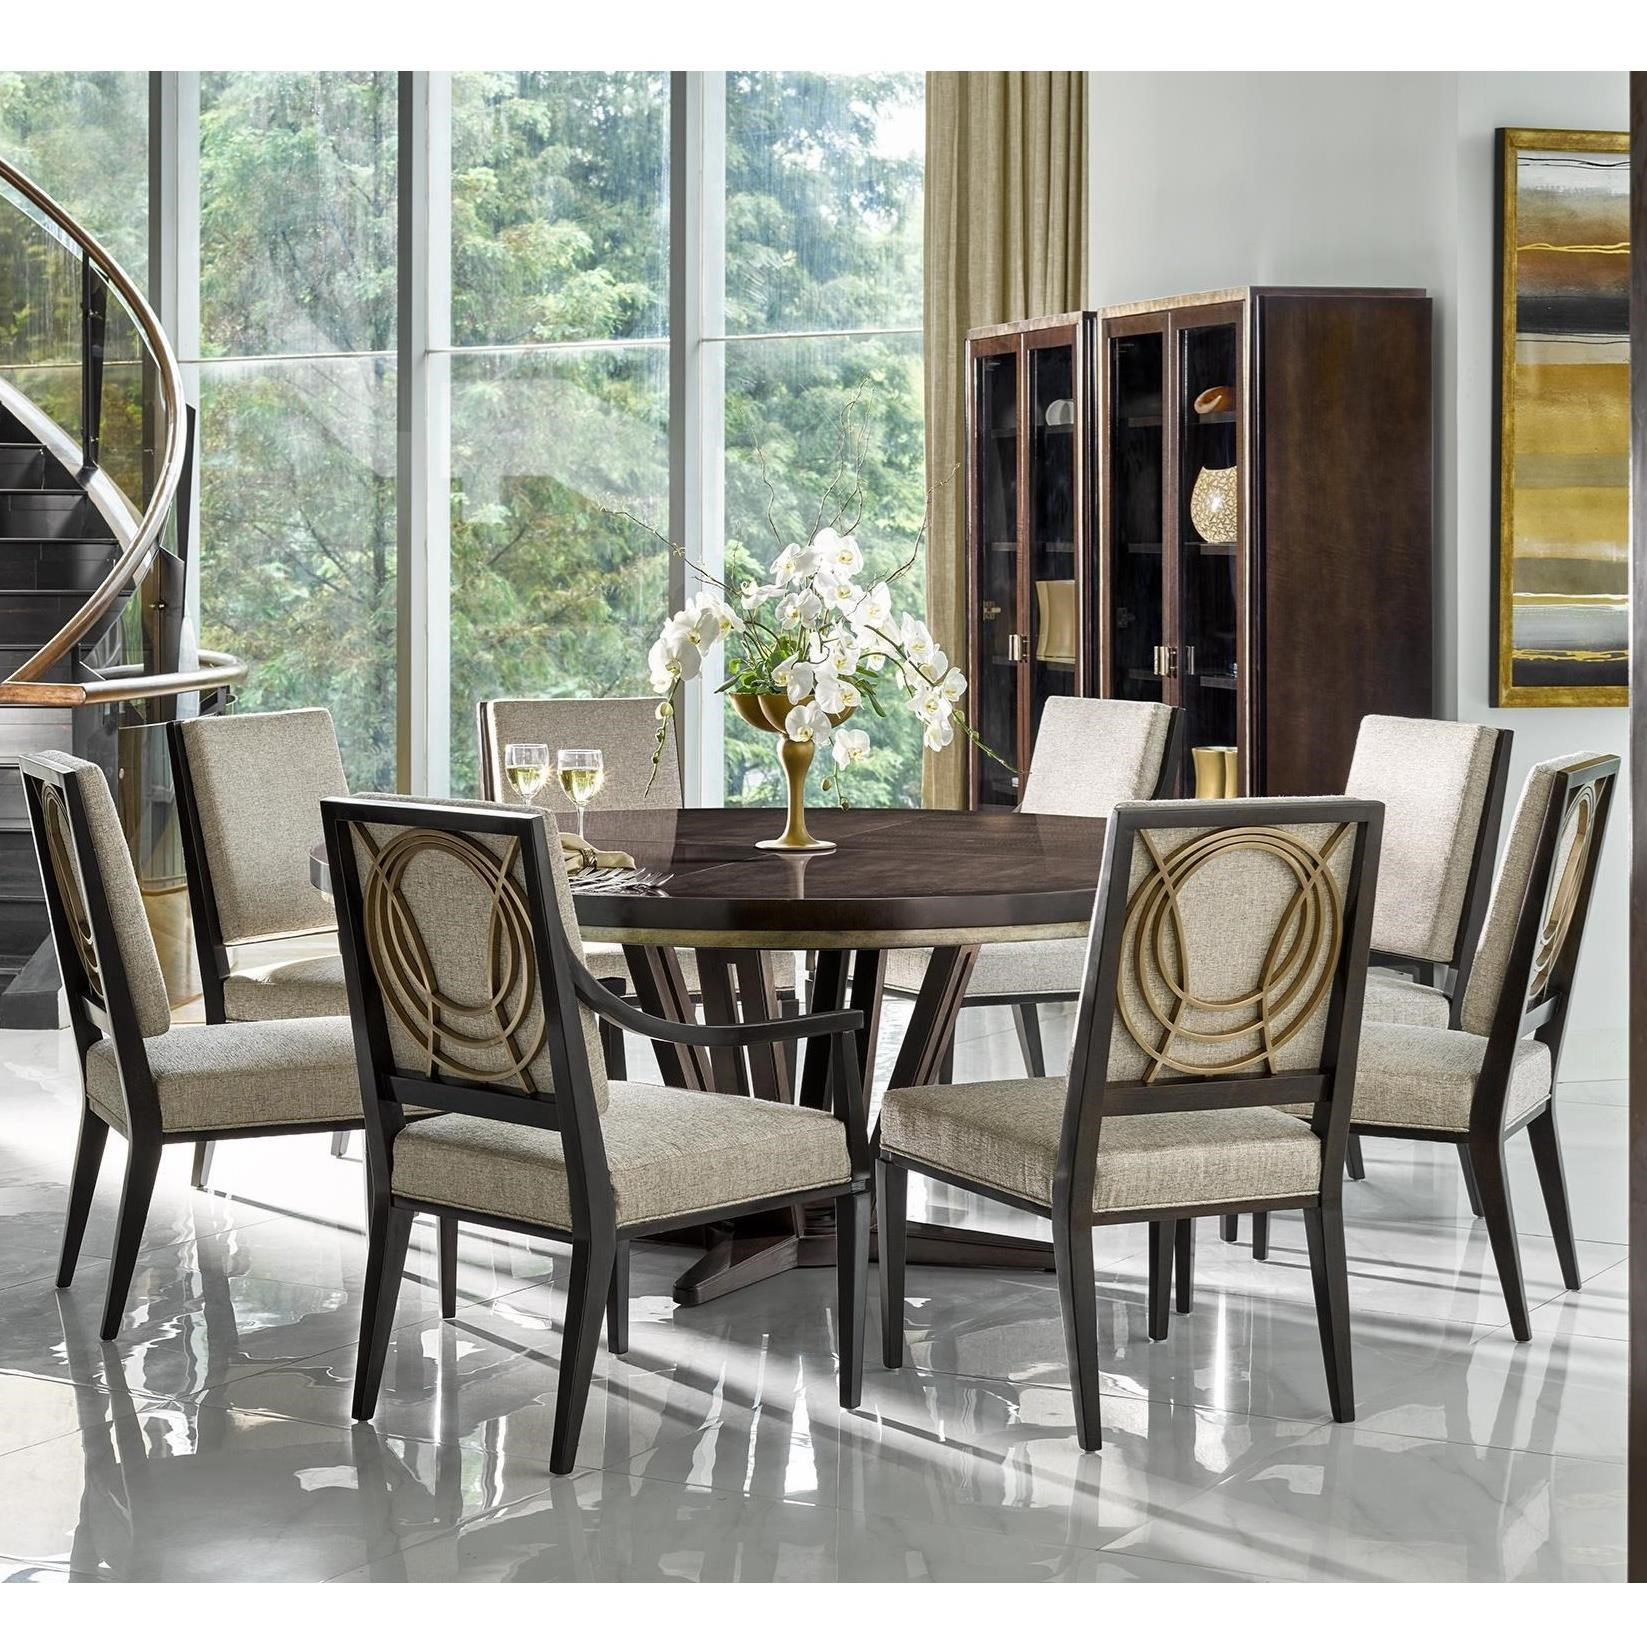 Fine Furniture Design Deco 9 Piece Dining Set With Round